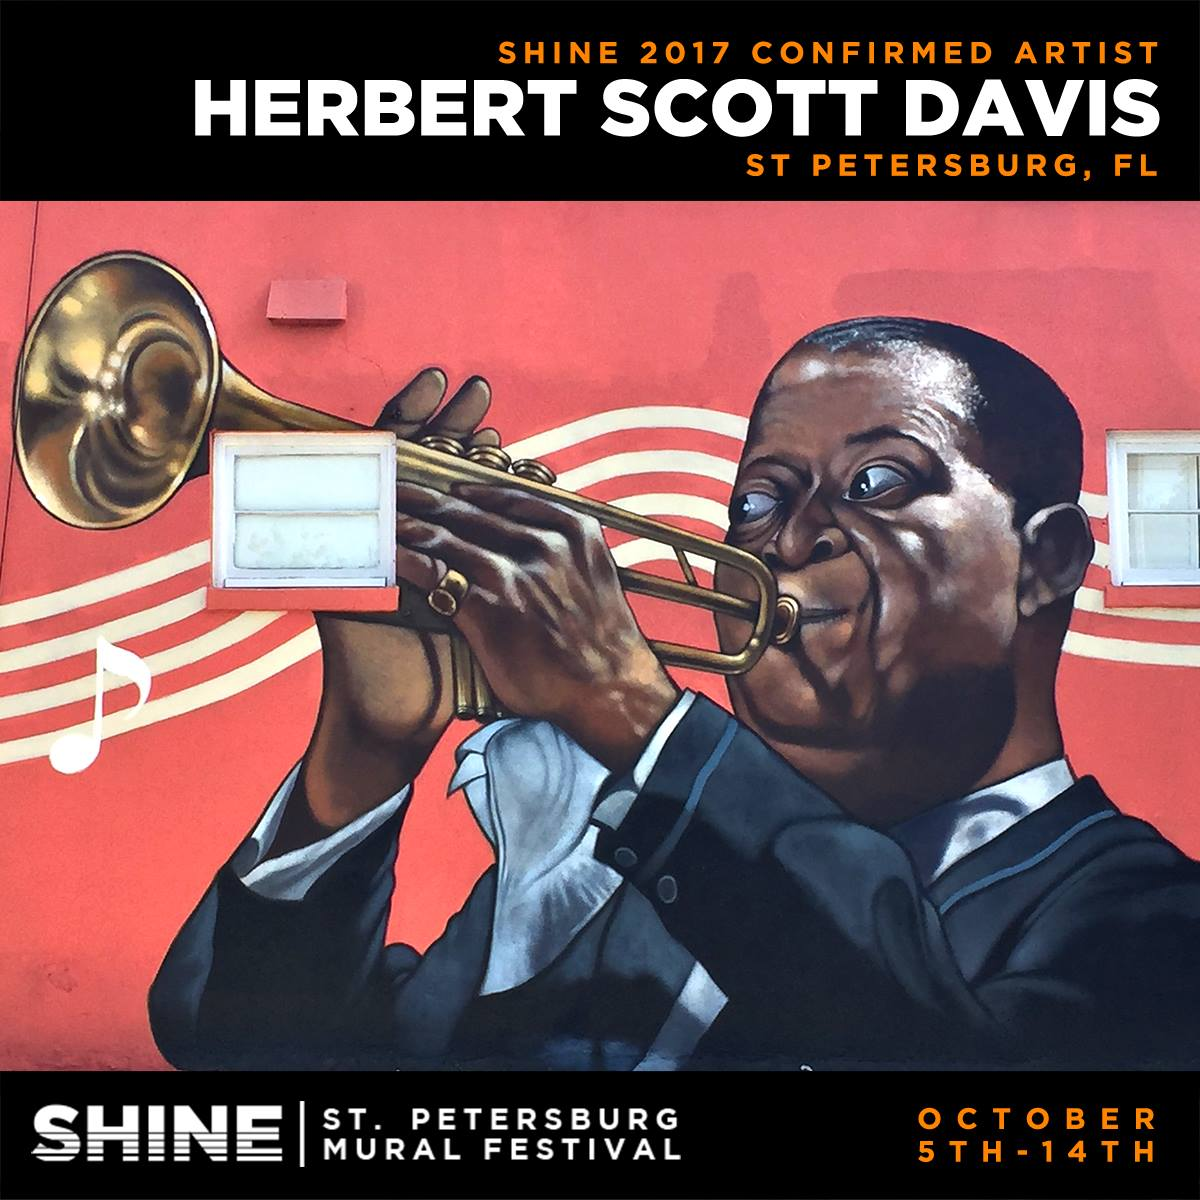 SHINE artist - Hebert Scott Davis